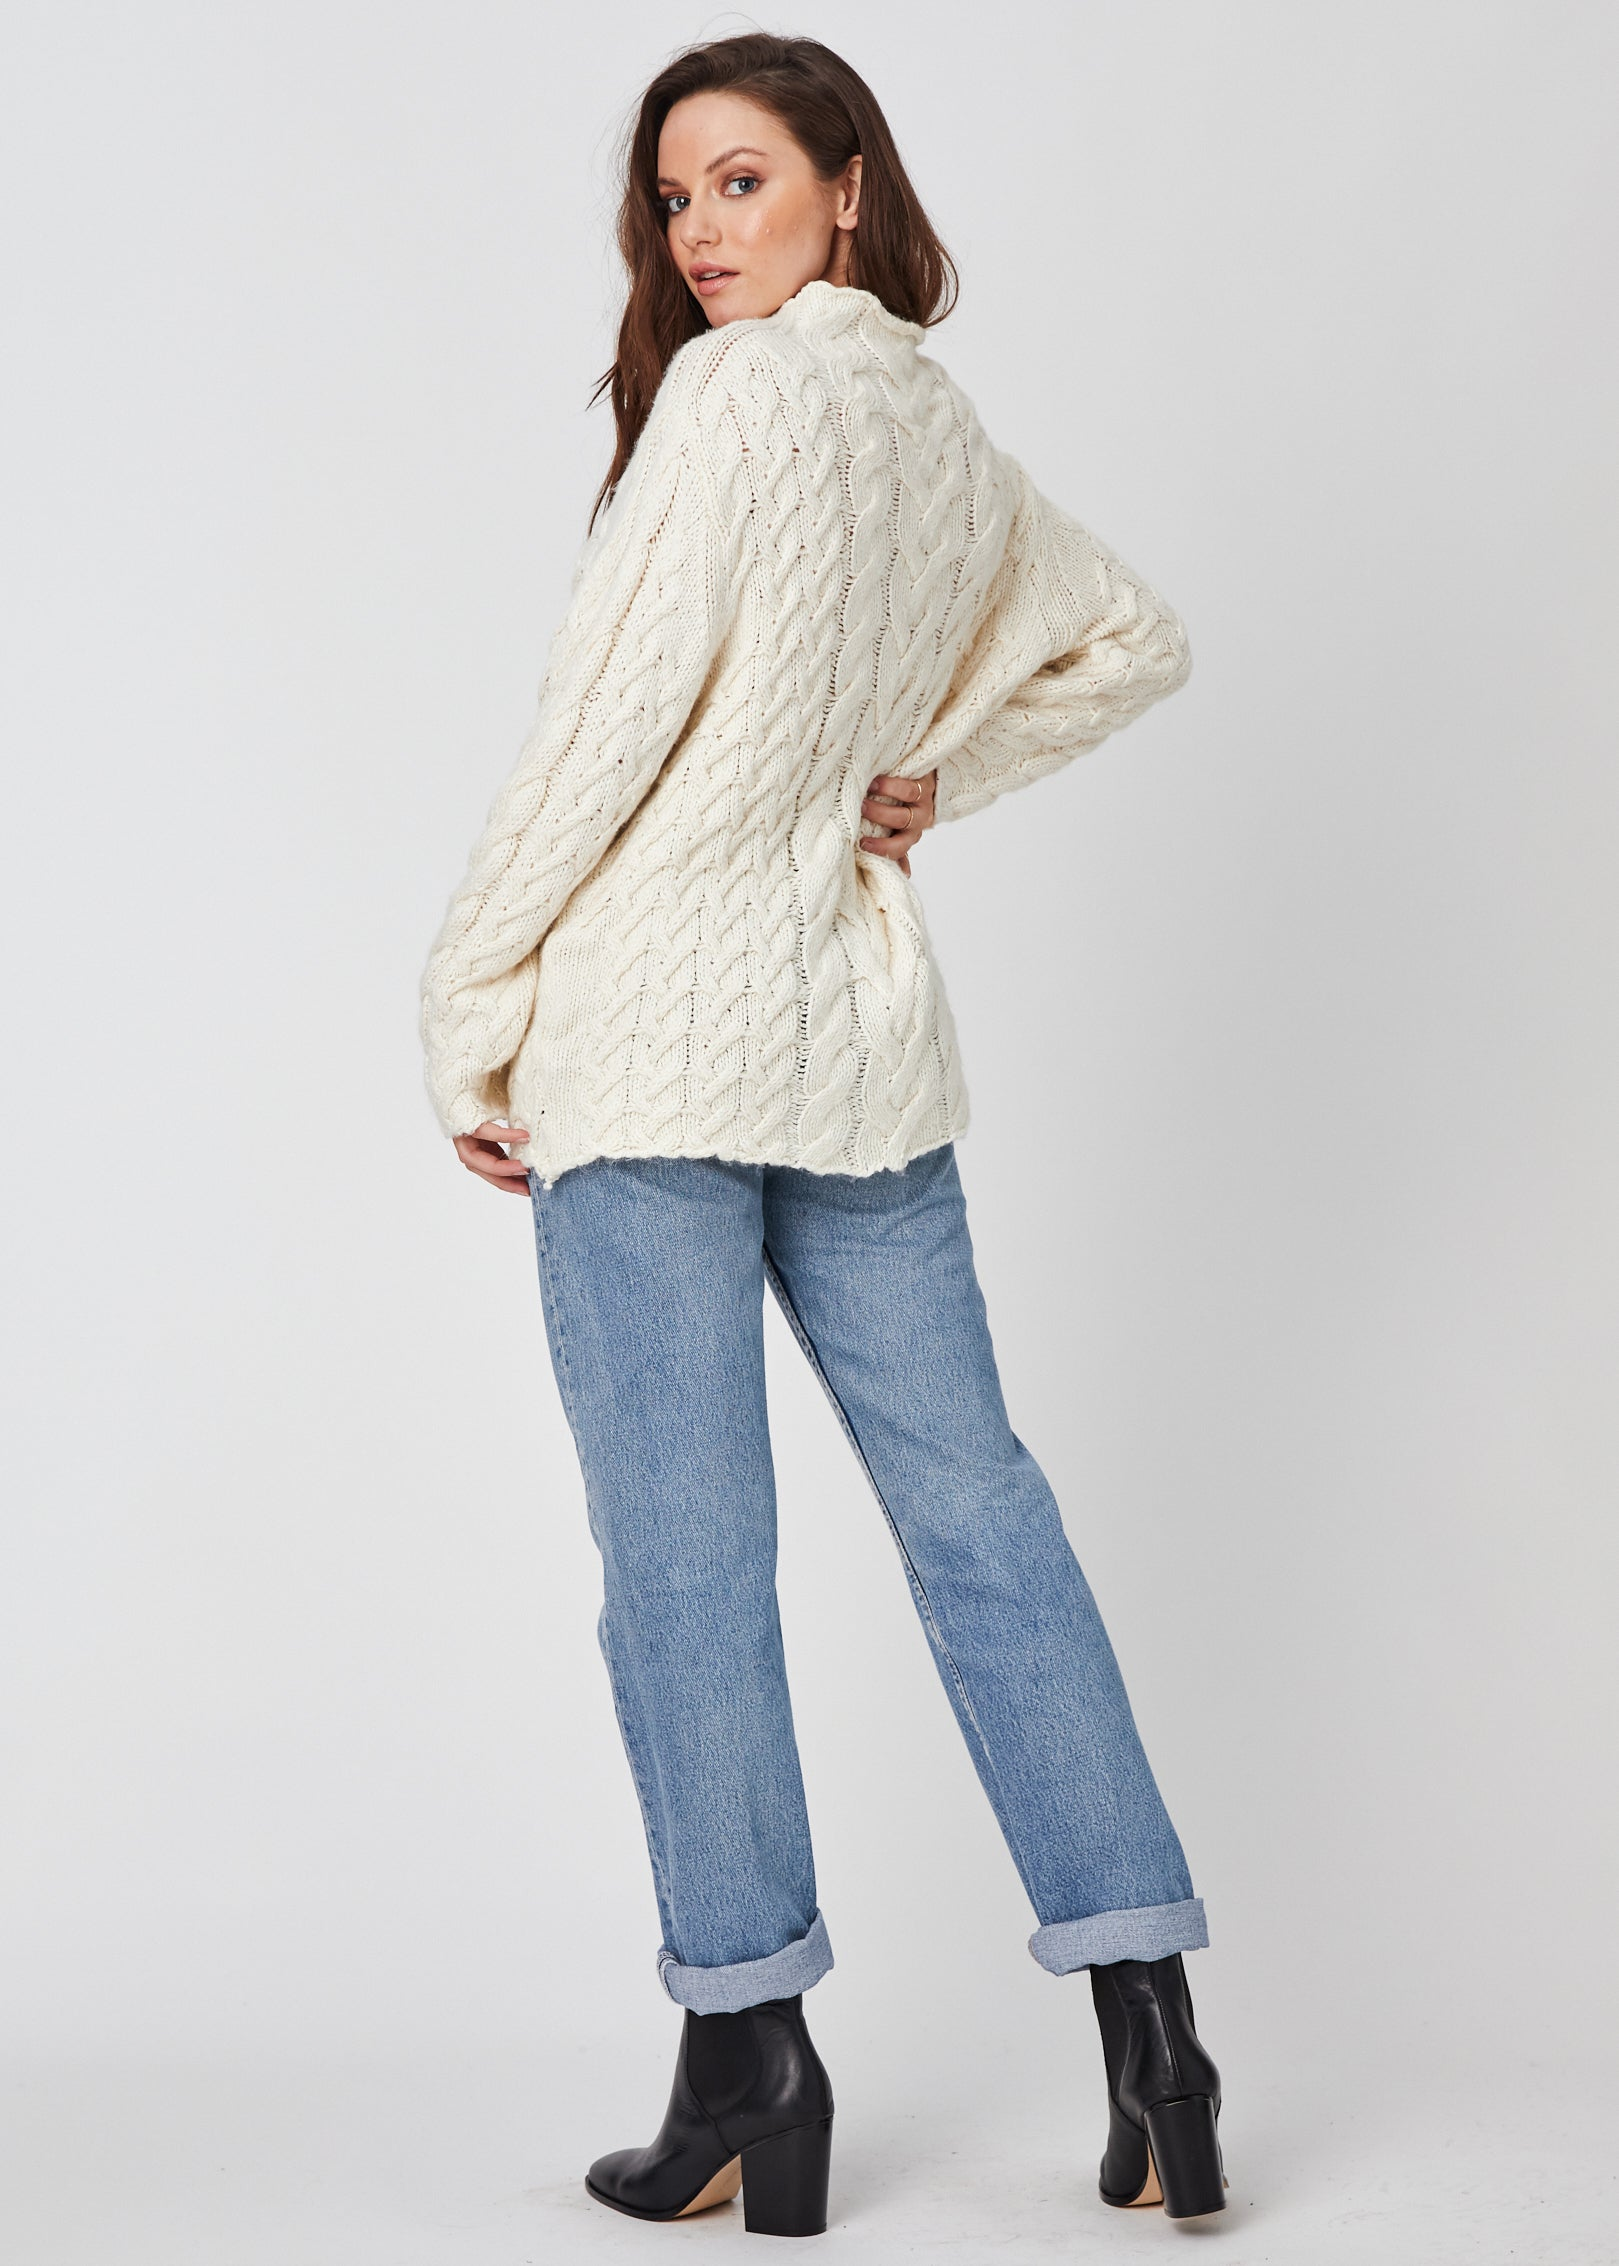 Cotton Wood Sweater